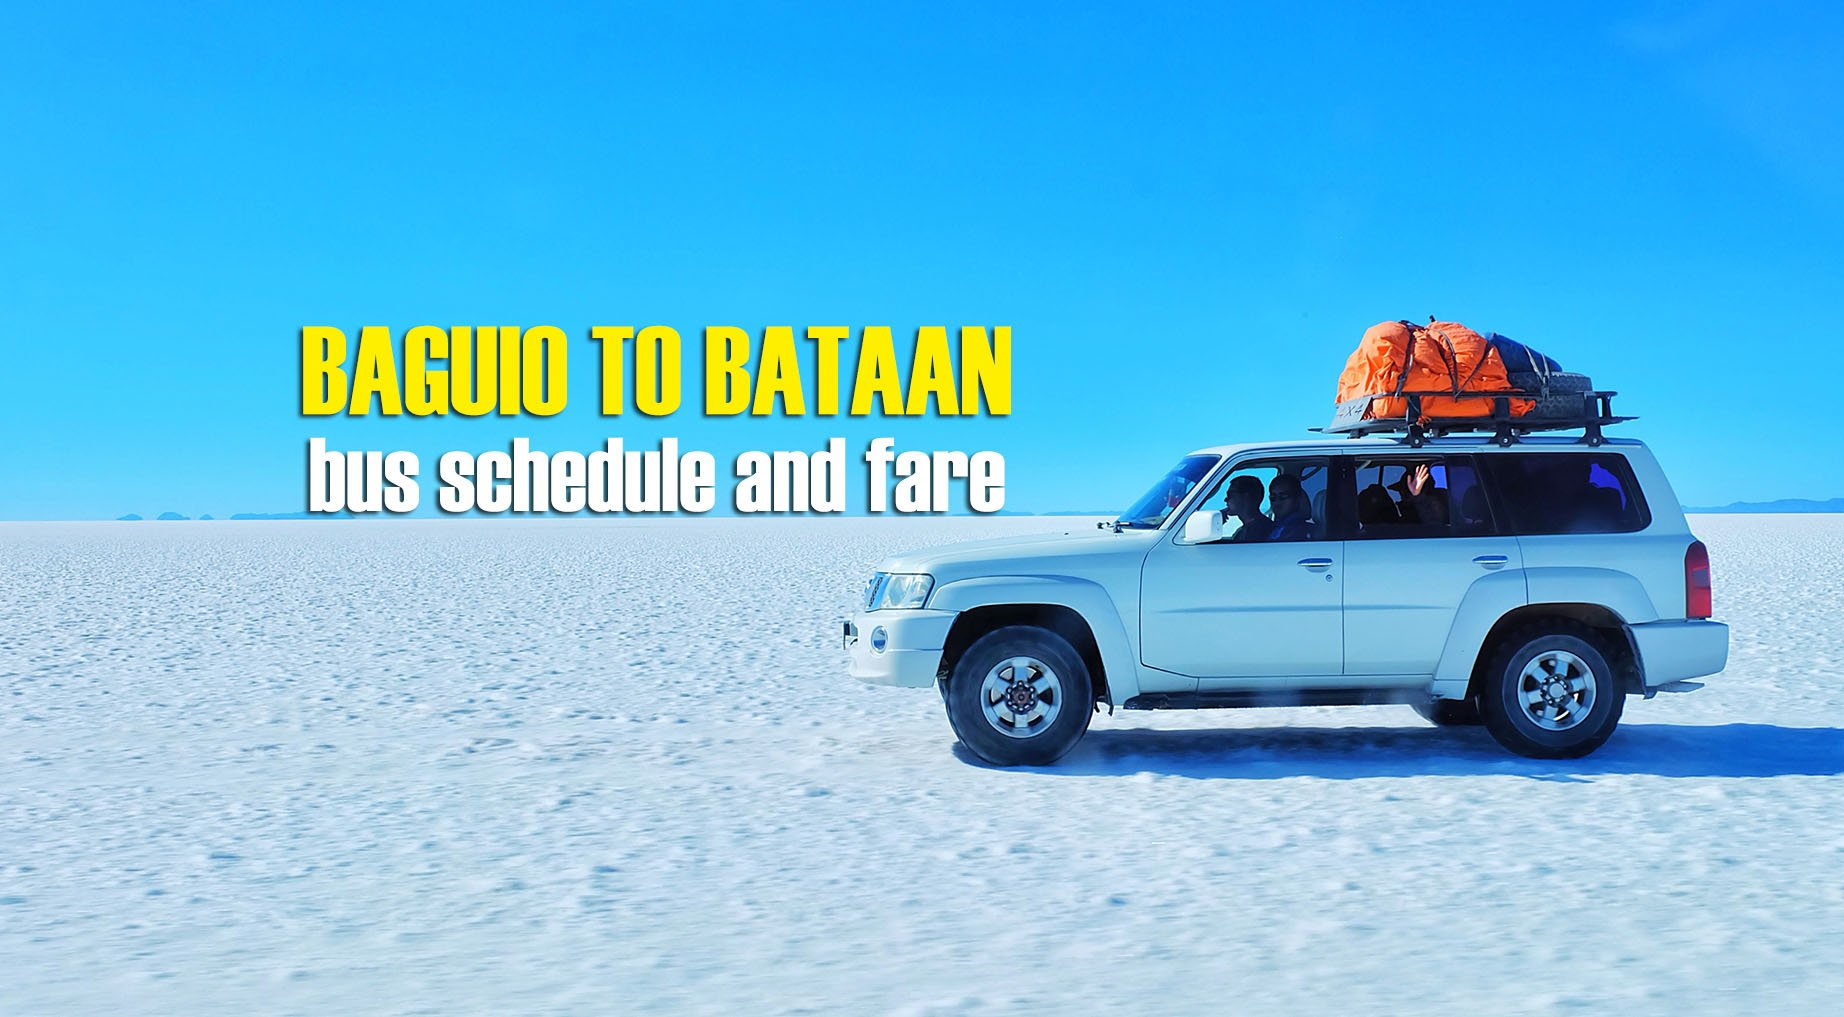 Baguio to Bataan: 2020 Bus Schedule and Fare